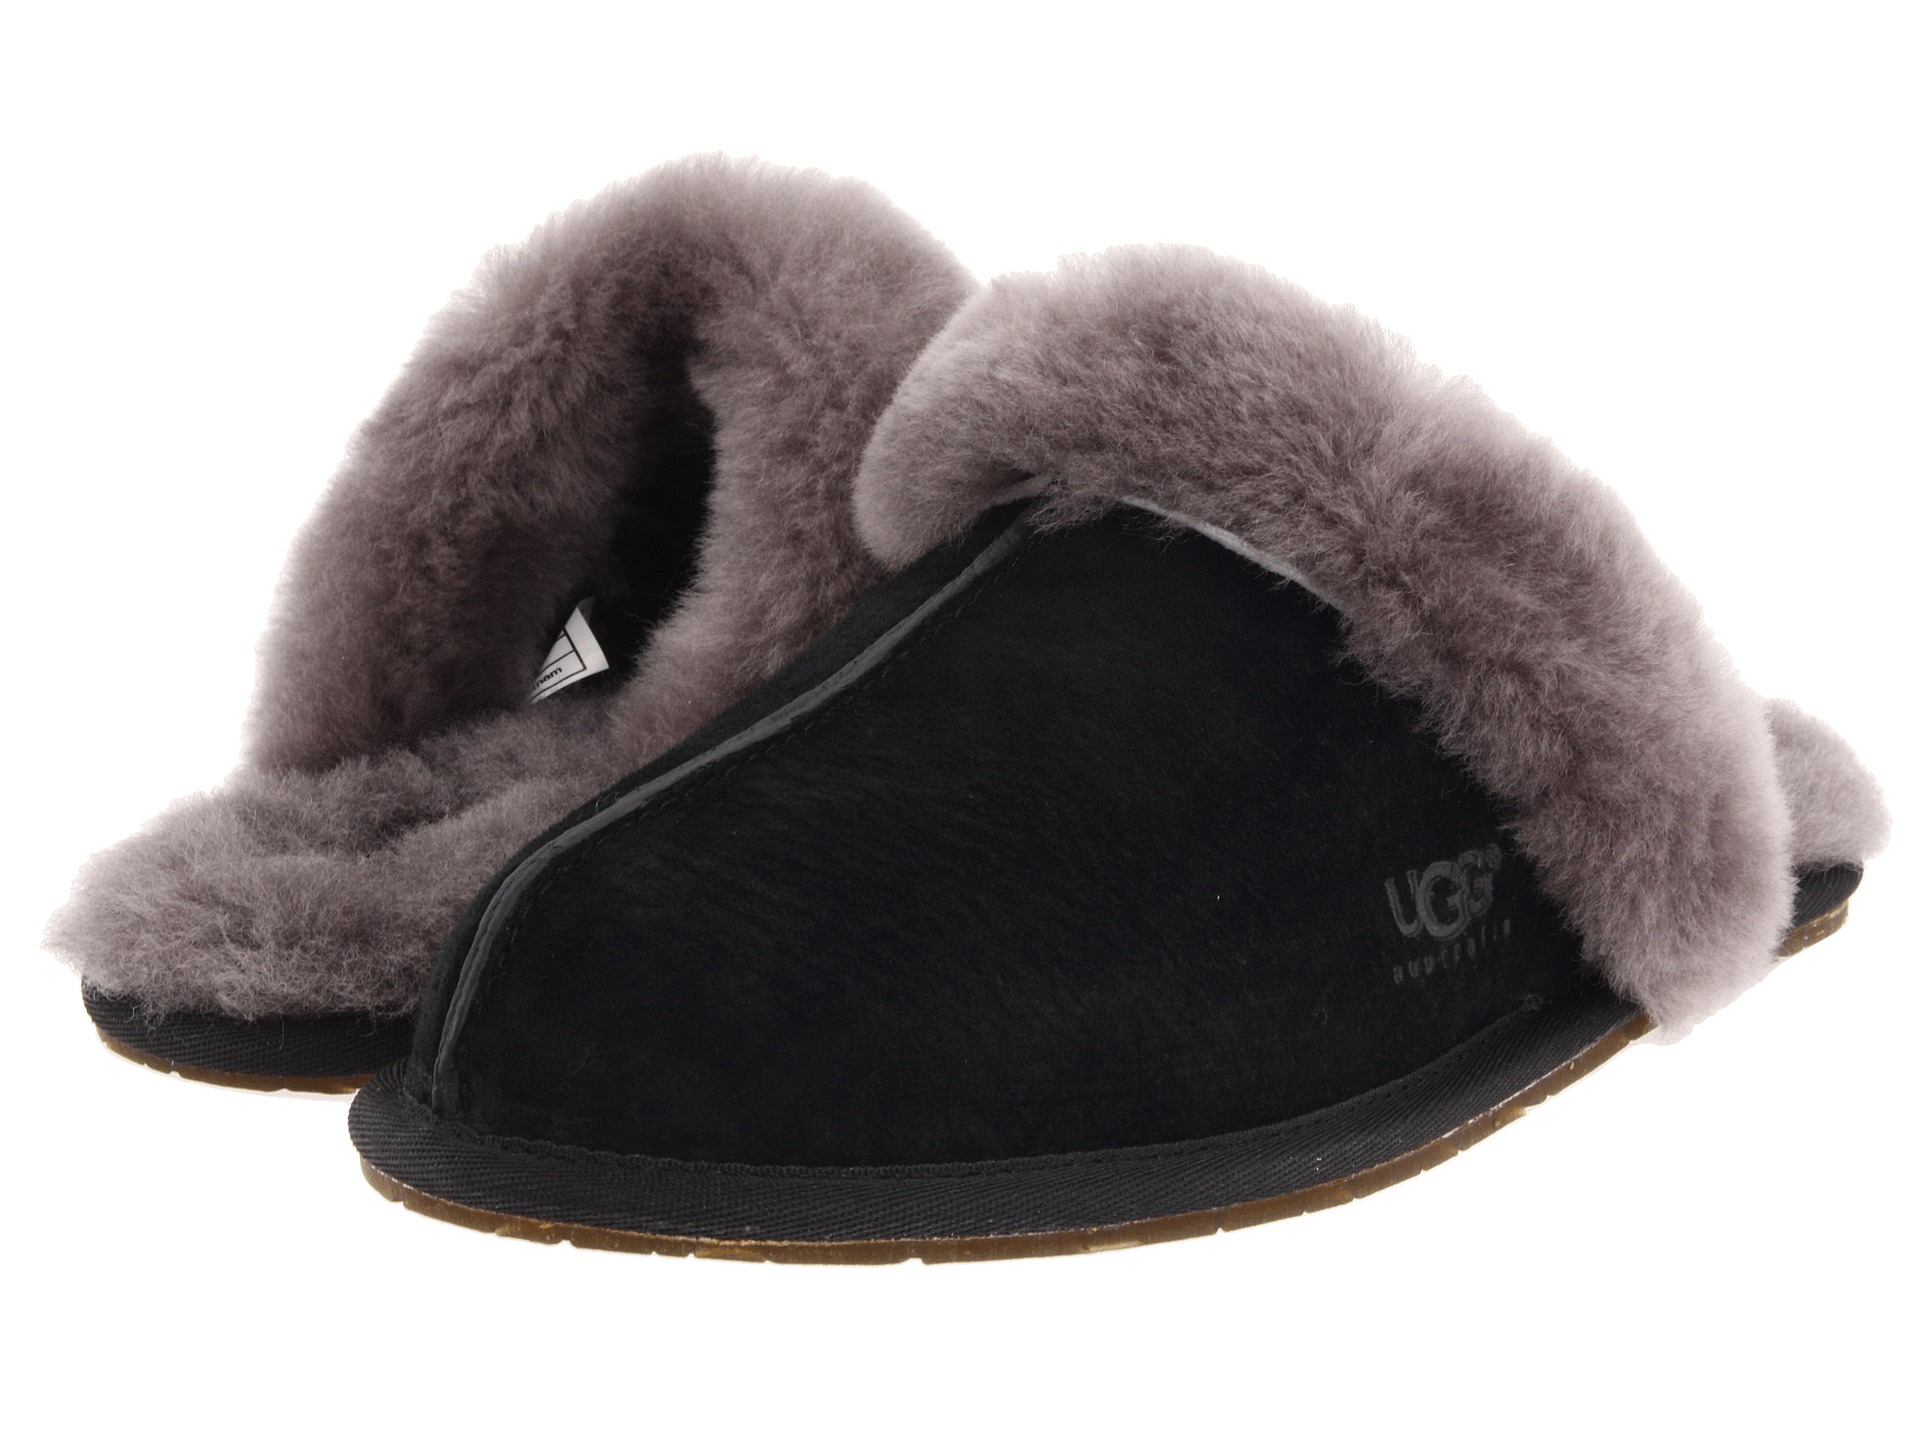 Ugg Scuffette At Zappos - cheap watches mgc-gas.com 04c3205eb